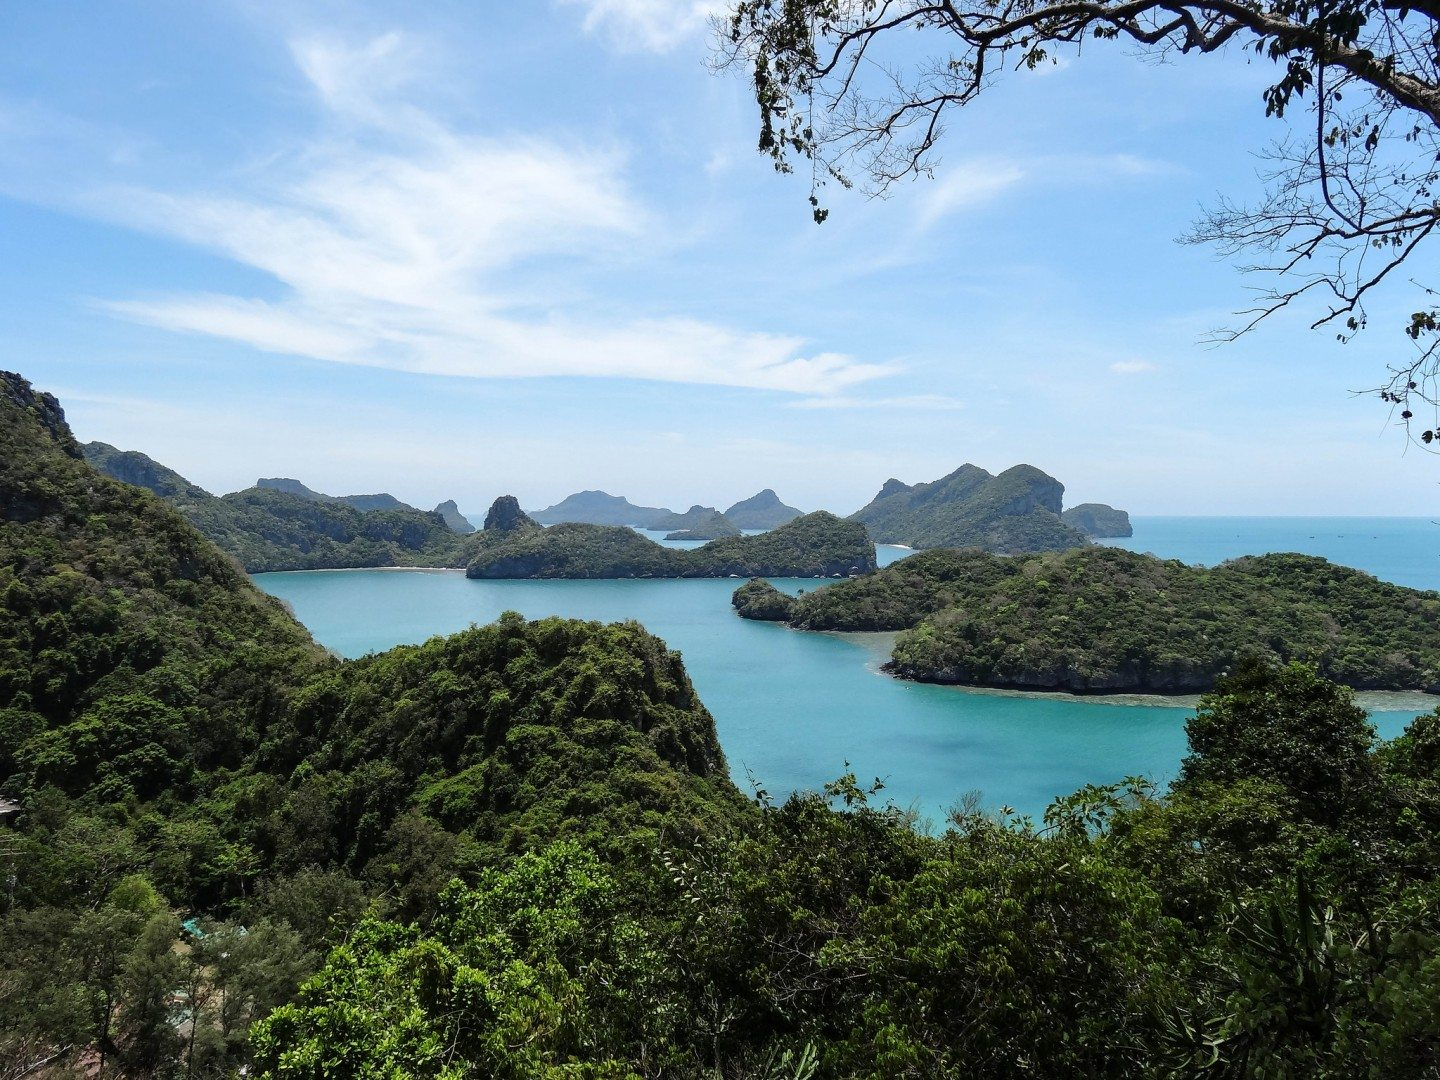 Ang Thong Marine National Park Photo Credit: Bruno Weideli / Flickr